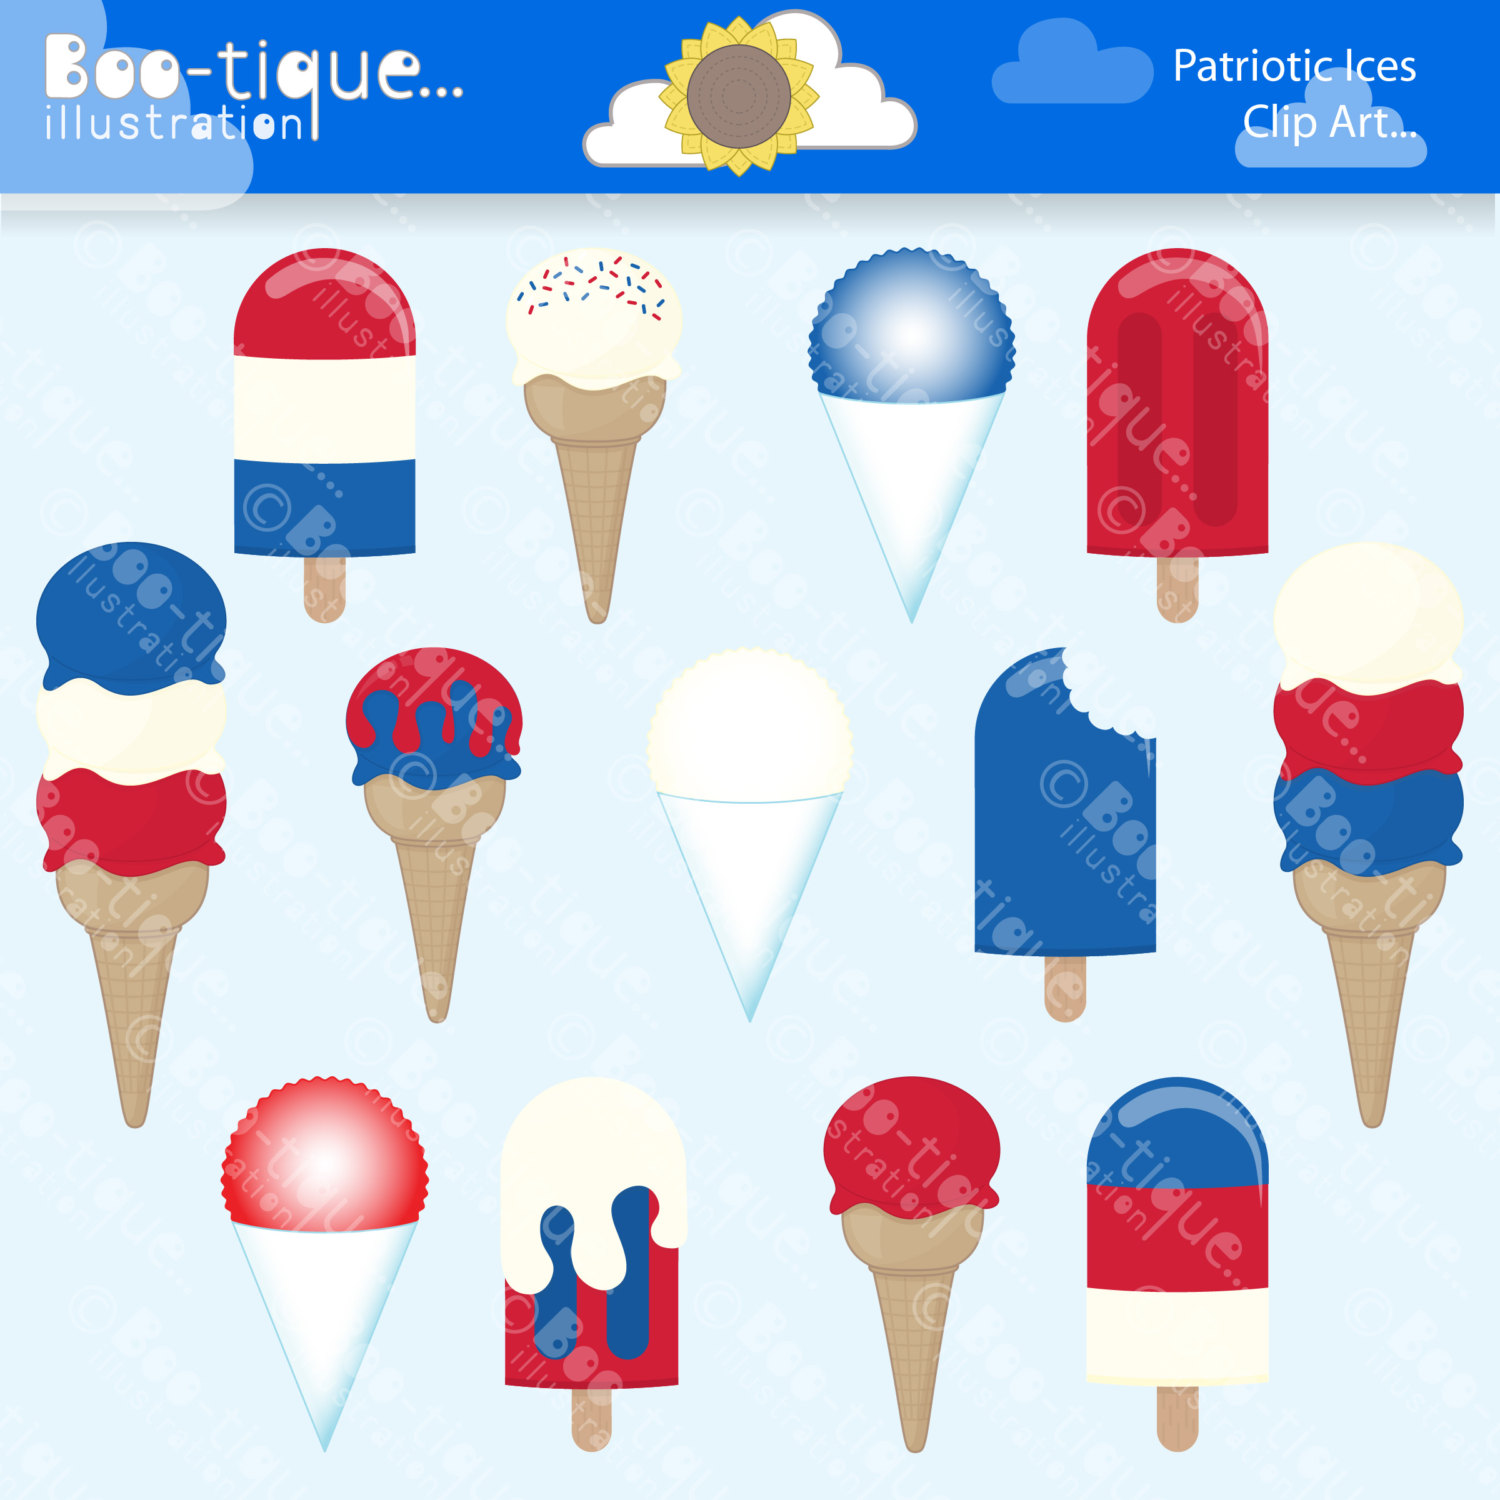 204 July 4th free clipart.